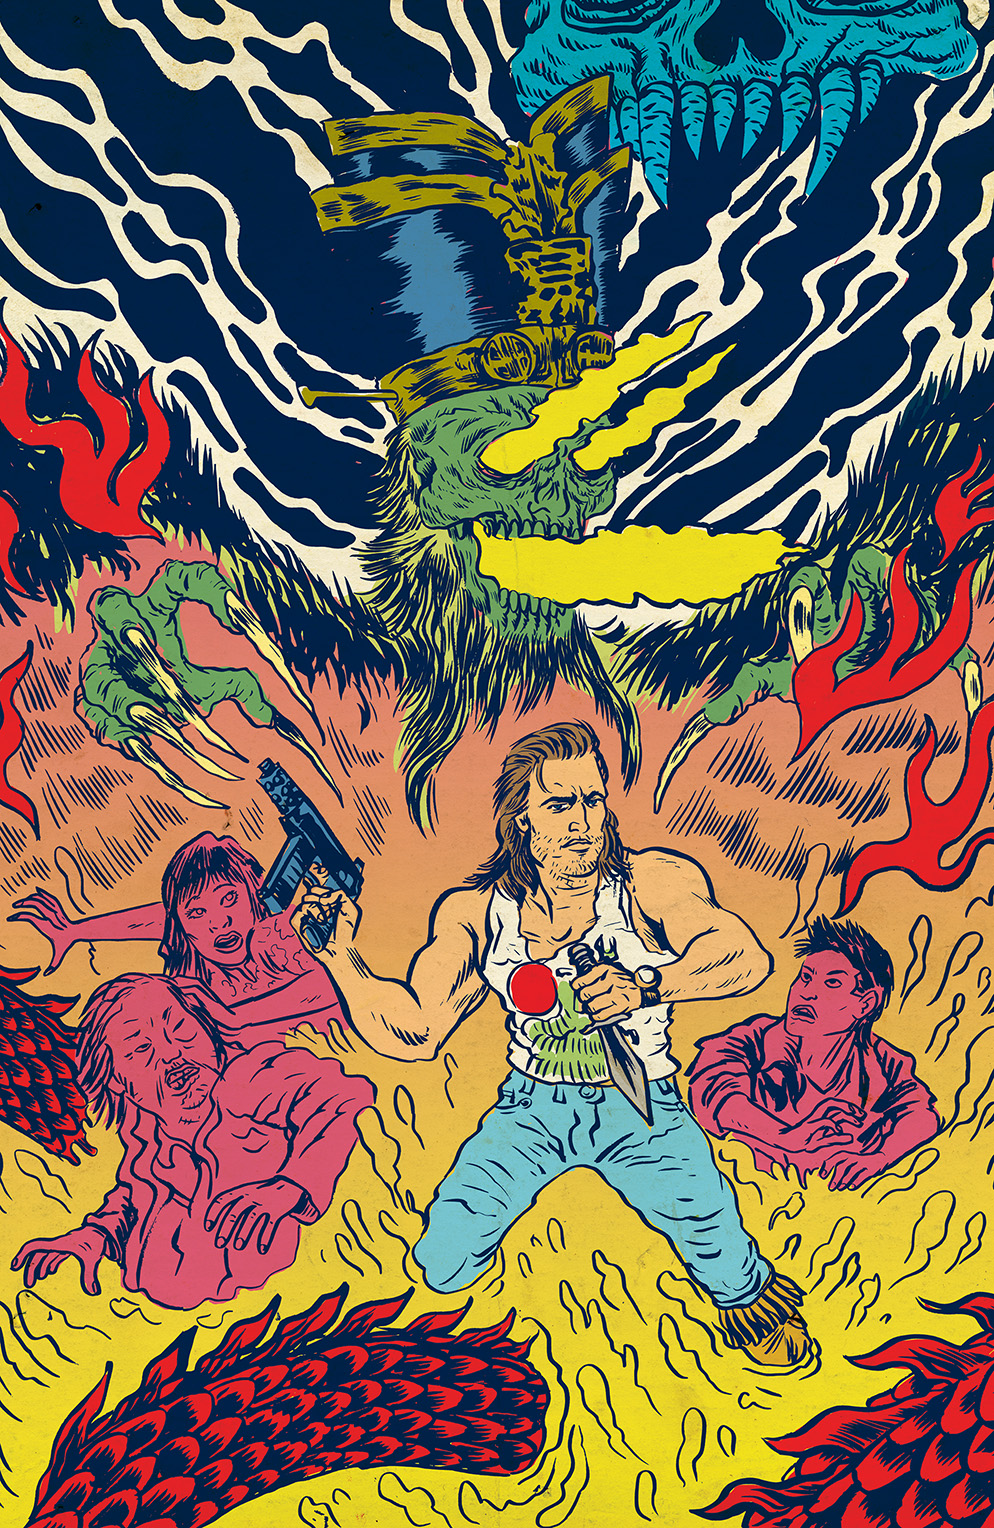 BIG TROUBLE IN LITTLE CHINA #5 Cover B